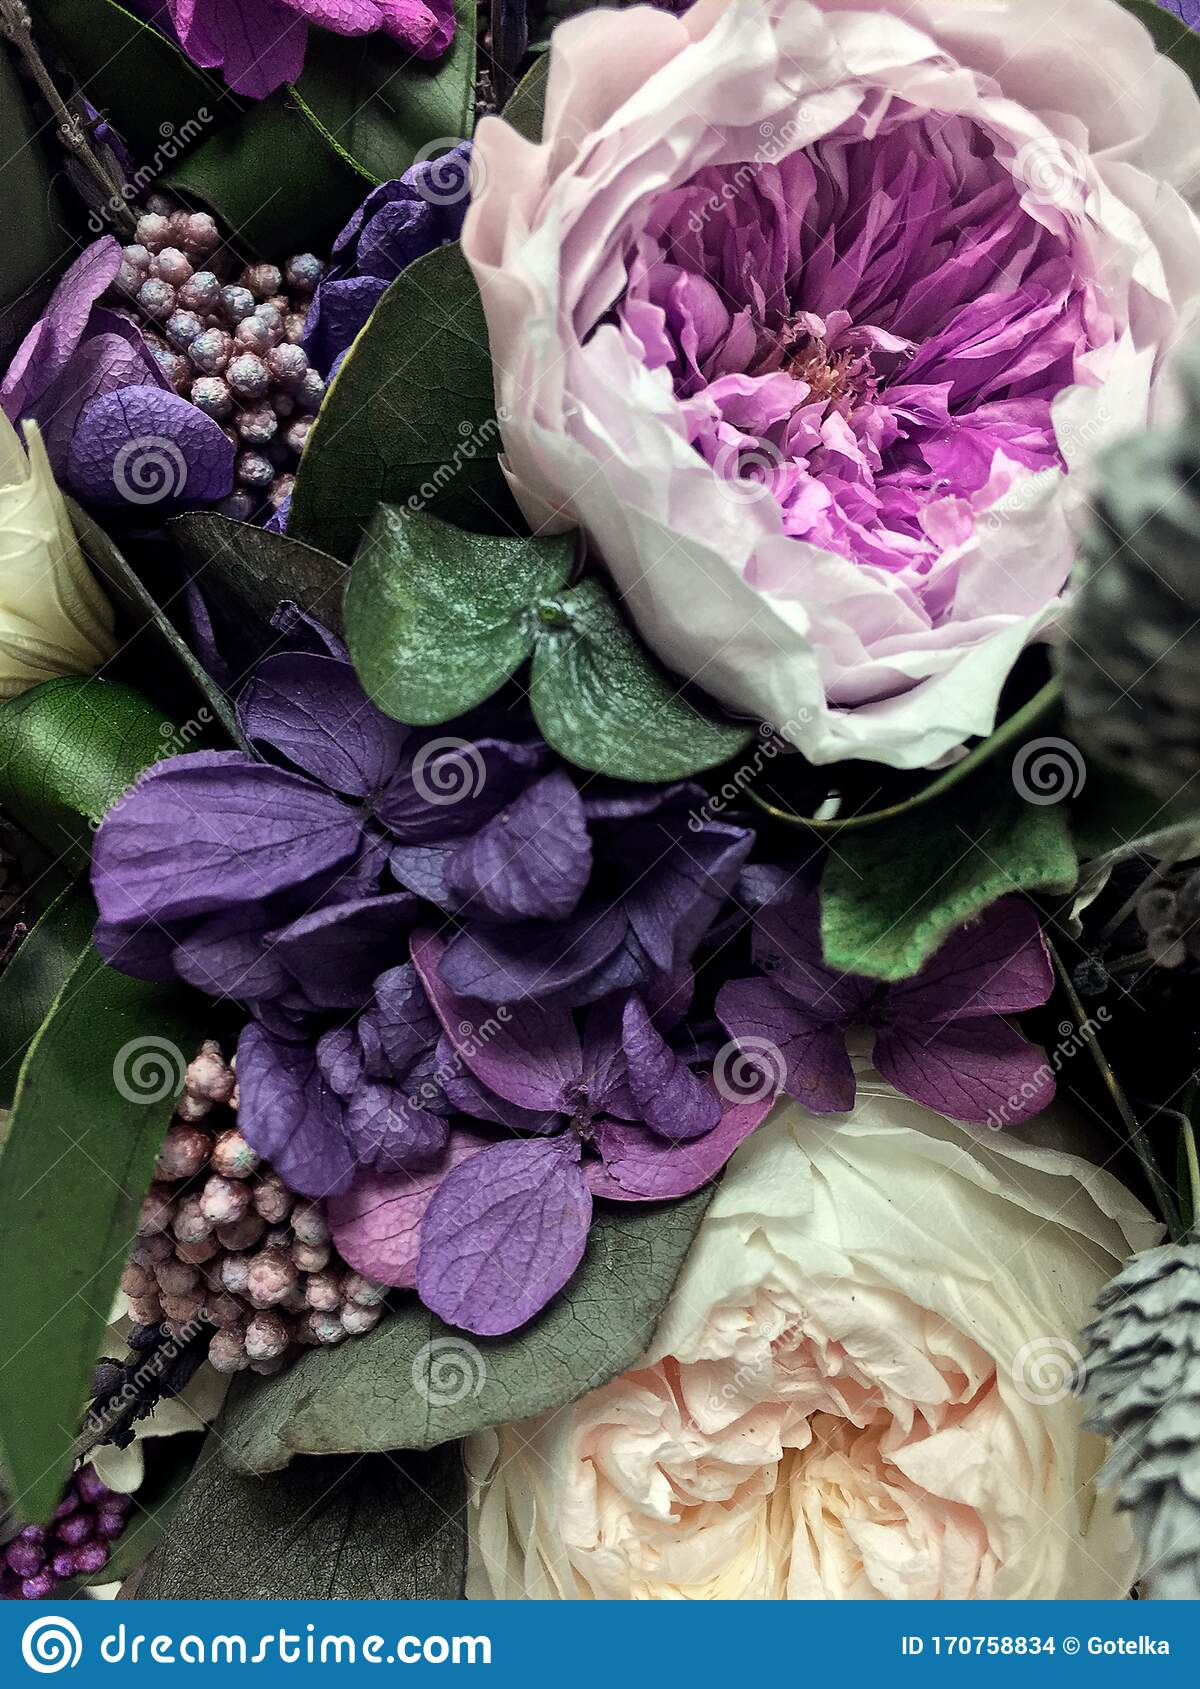 Beautiful Bouquet Of Preserved Flowers Hydrangea Eucalyptus Purple And White Peony Roses Dried Flowers Bouquet Of Spring Stock Photo Image Of Eucalyptus Love 170758834